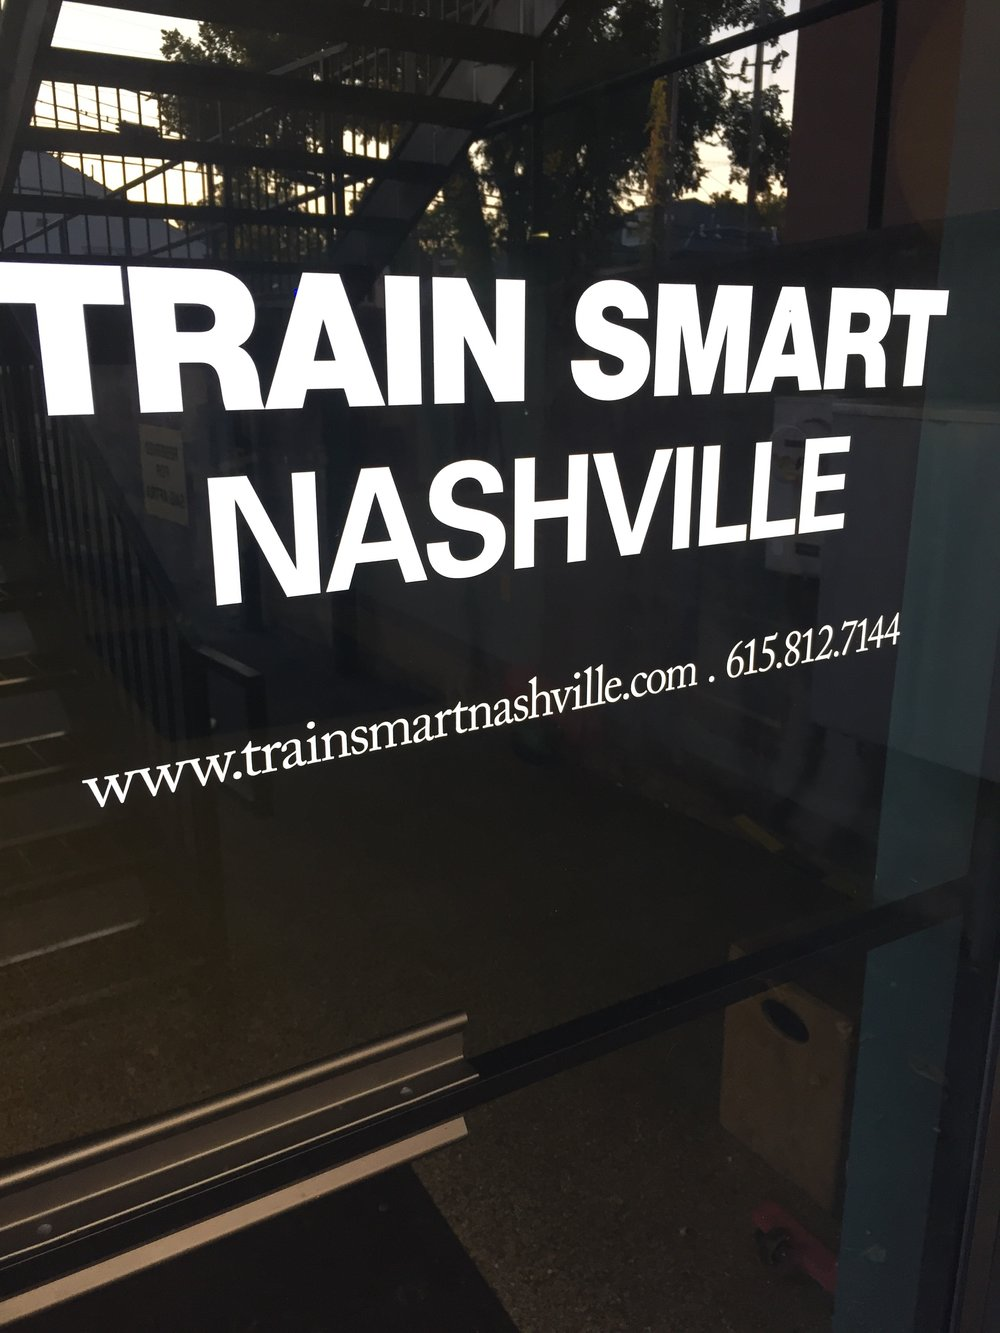 Darren Purcell - Coming Later this week on Lambo's Social Club Episode 6 will be a look into a healthy lifestyle and interview with Darren Purcell, a very skilled personal trainer and owner of Train Smart Nashville.Train Smart Nashville